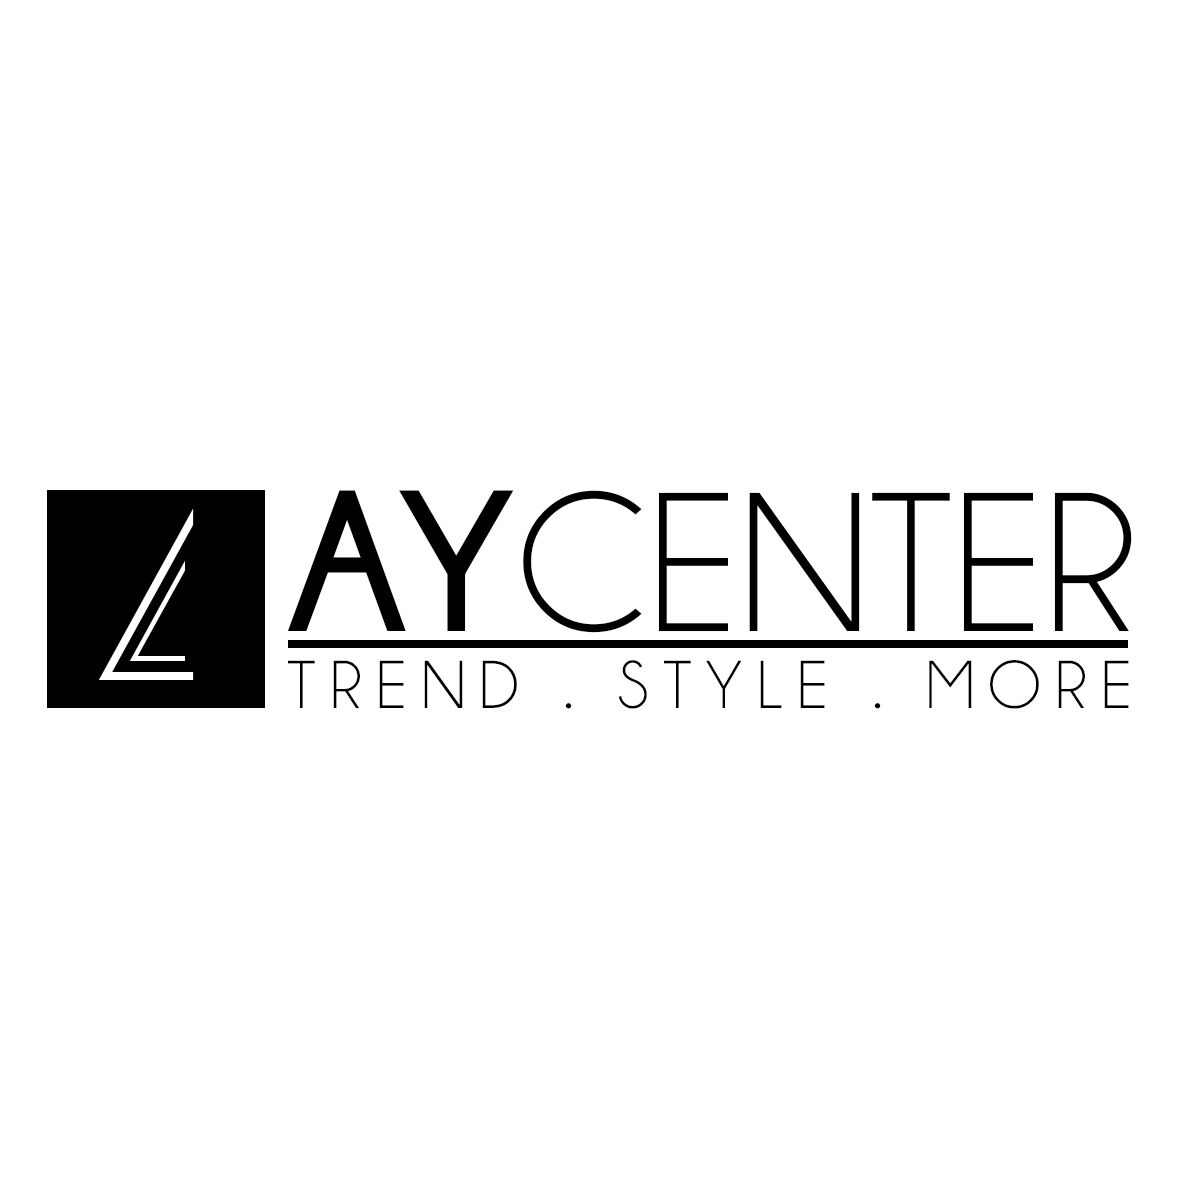 AYCENTER-TREND.STYLE.MORE